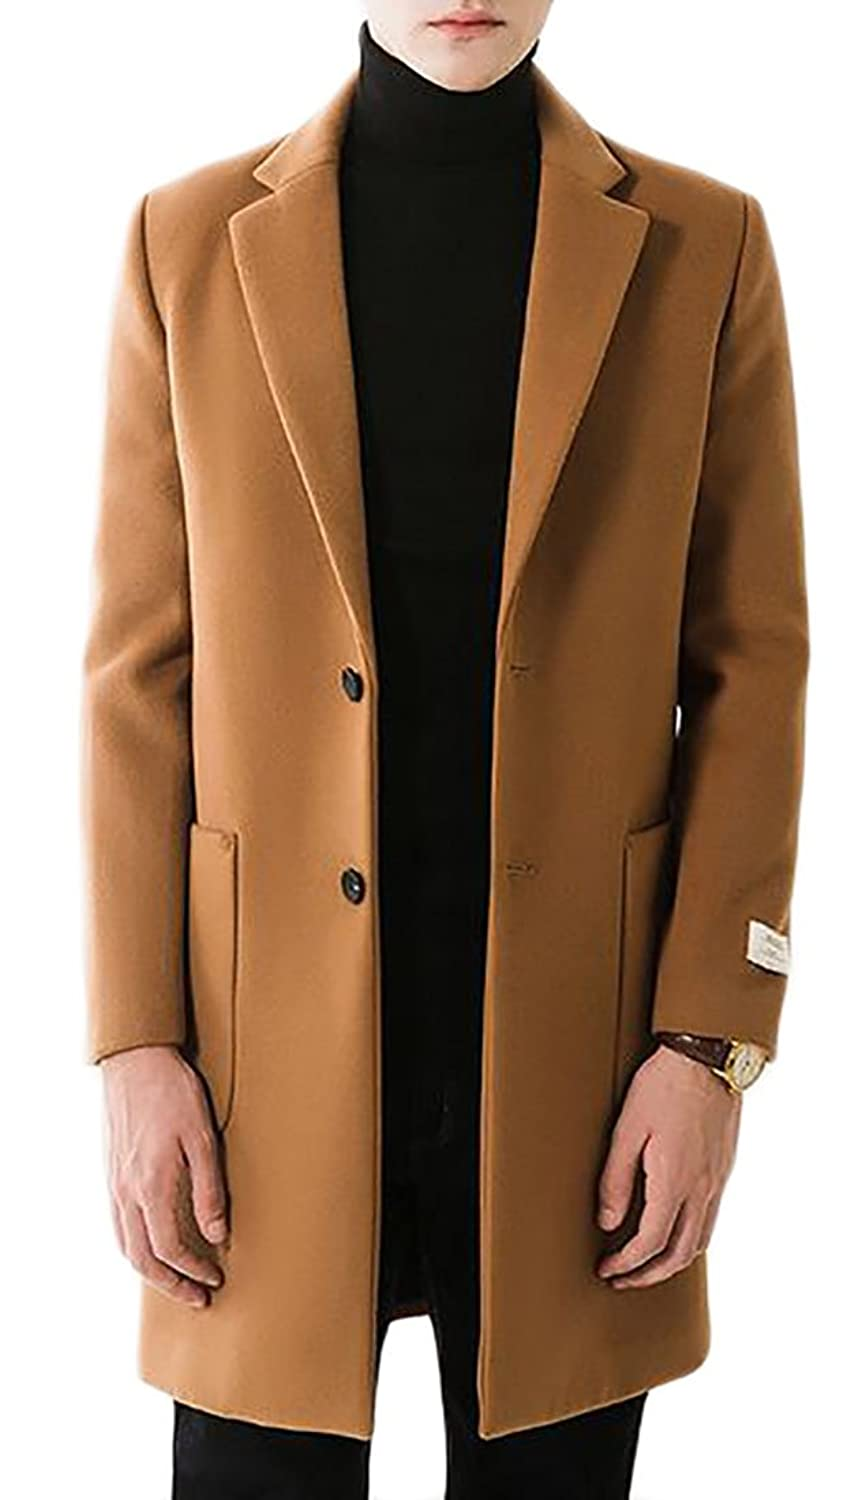 Xqs Mens Lapel Solid Winter Outdoor Two Button Mid Long Overcoat Peacoat by Xqs